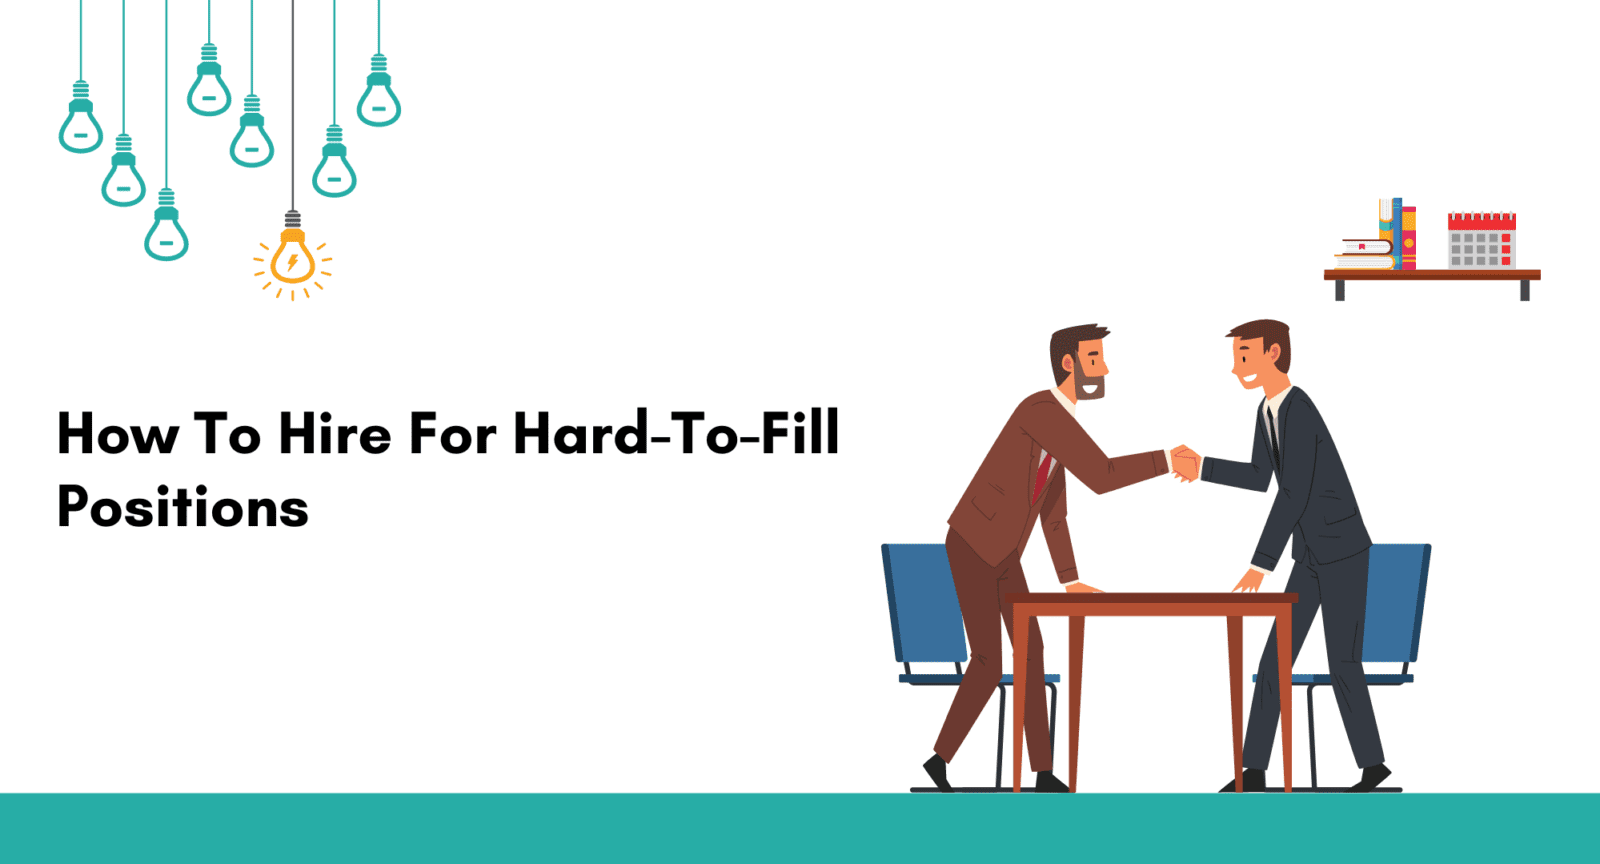 how to hire for hard-to-fill positions. Recruiting Tips for Hard-to-Fill Positions. 10 Recruiting Tips for Hard-to-Fill Positions. RECRUITING TIPS FOR HARD-TO-FILL ROLES AND COMPETITIVE MARKETS. Ways to Attract Candidates to Your Hard-to-Fill Roles.